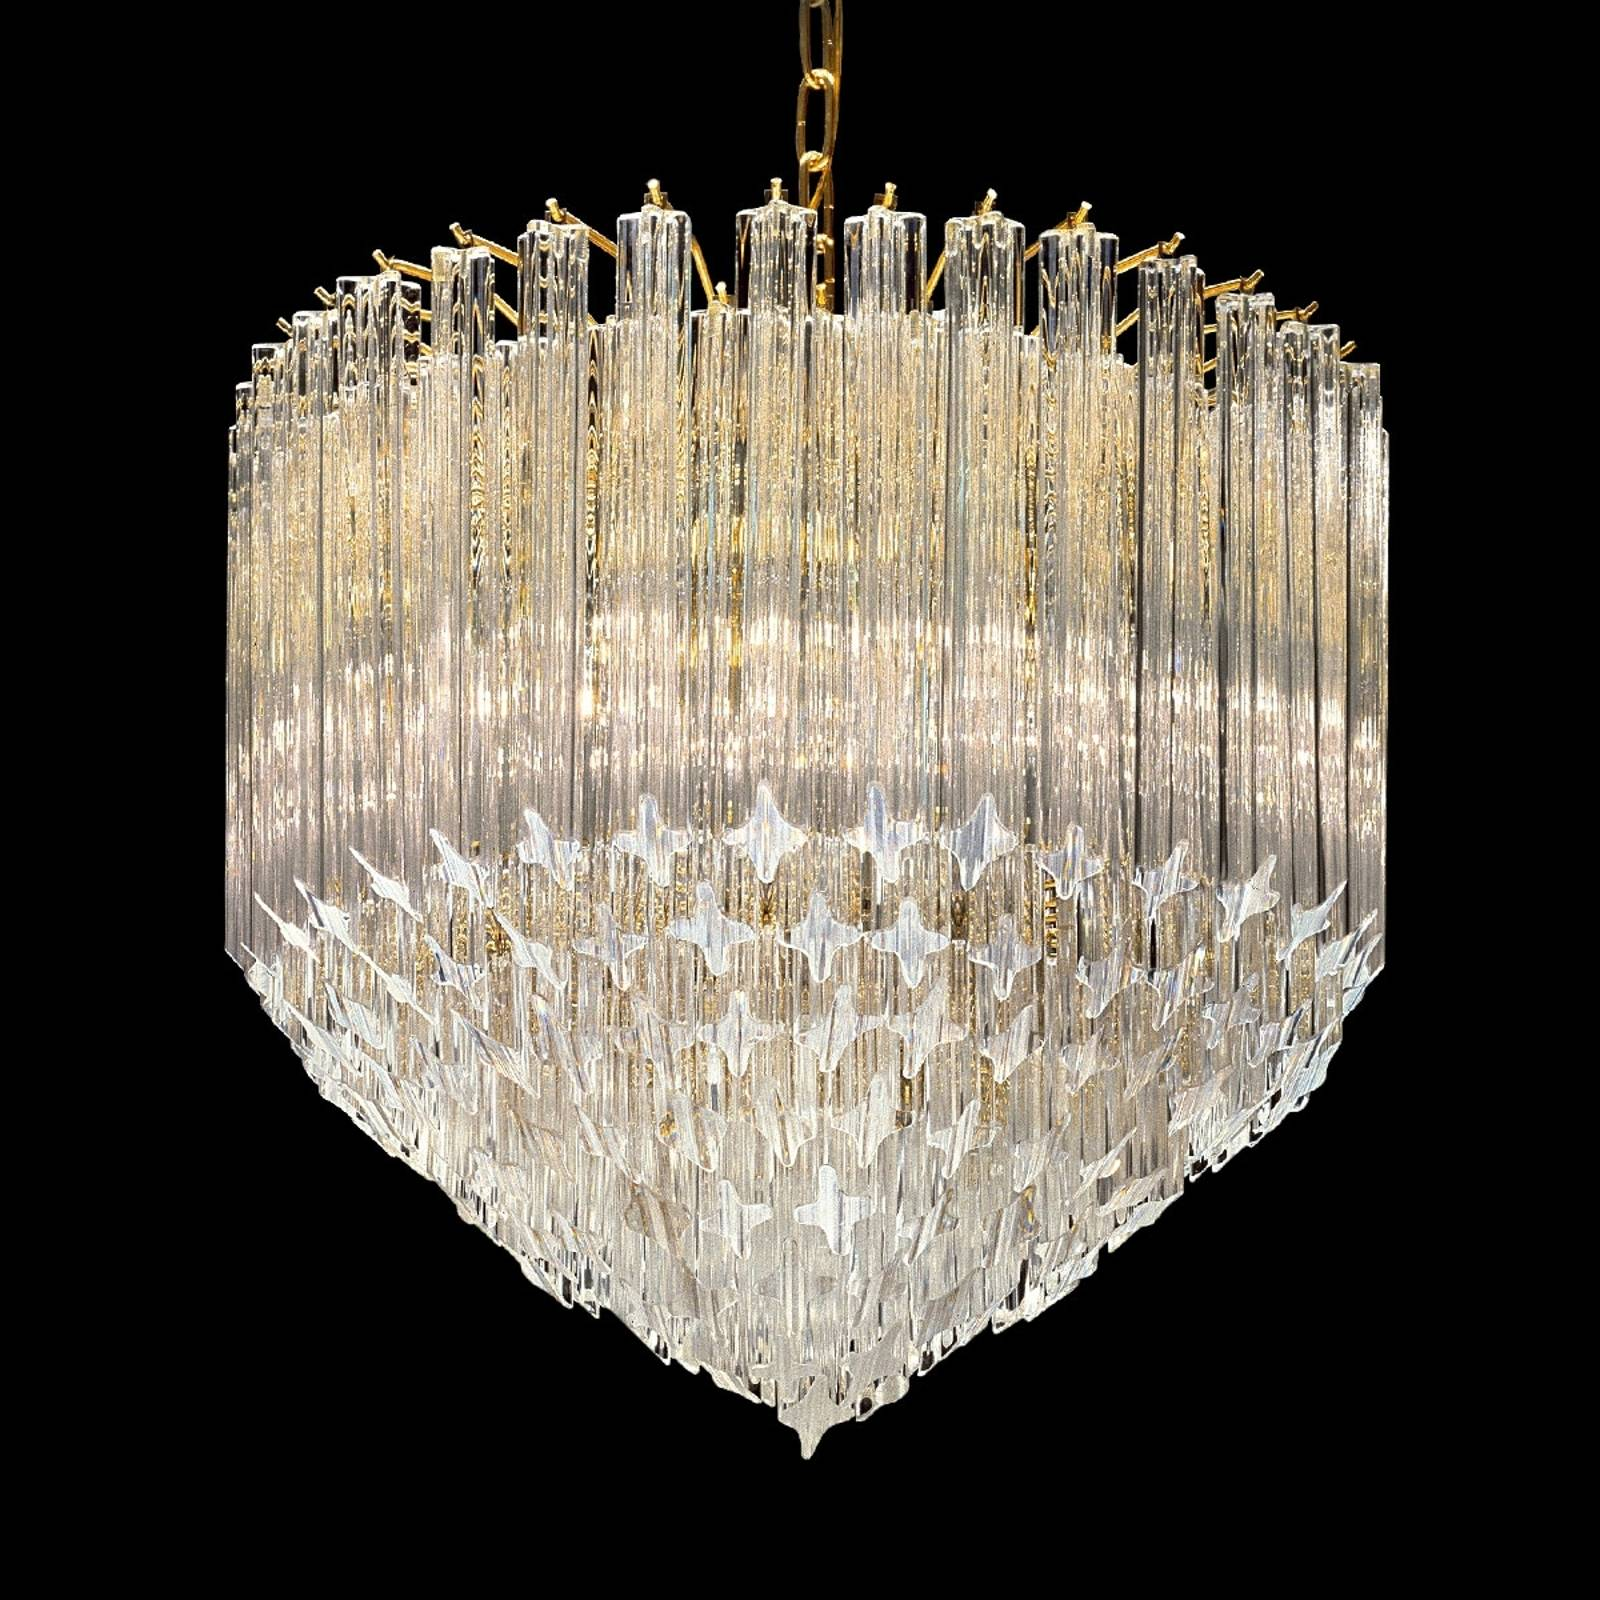 Large crystal light Pigna, 24 carat gold-plated from NOVARESI